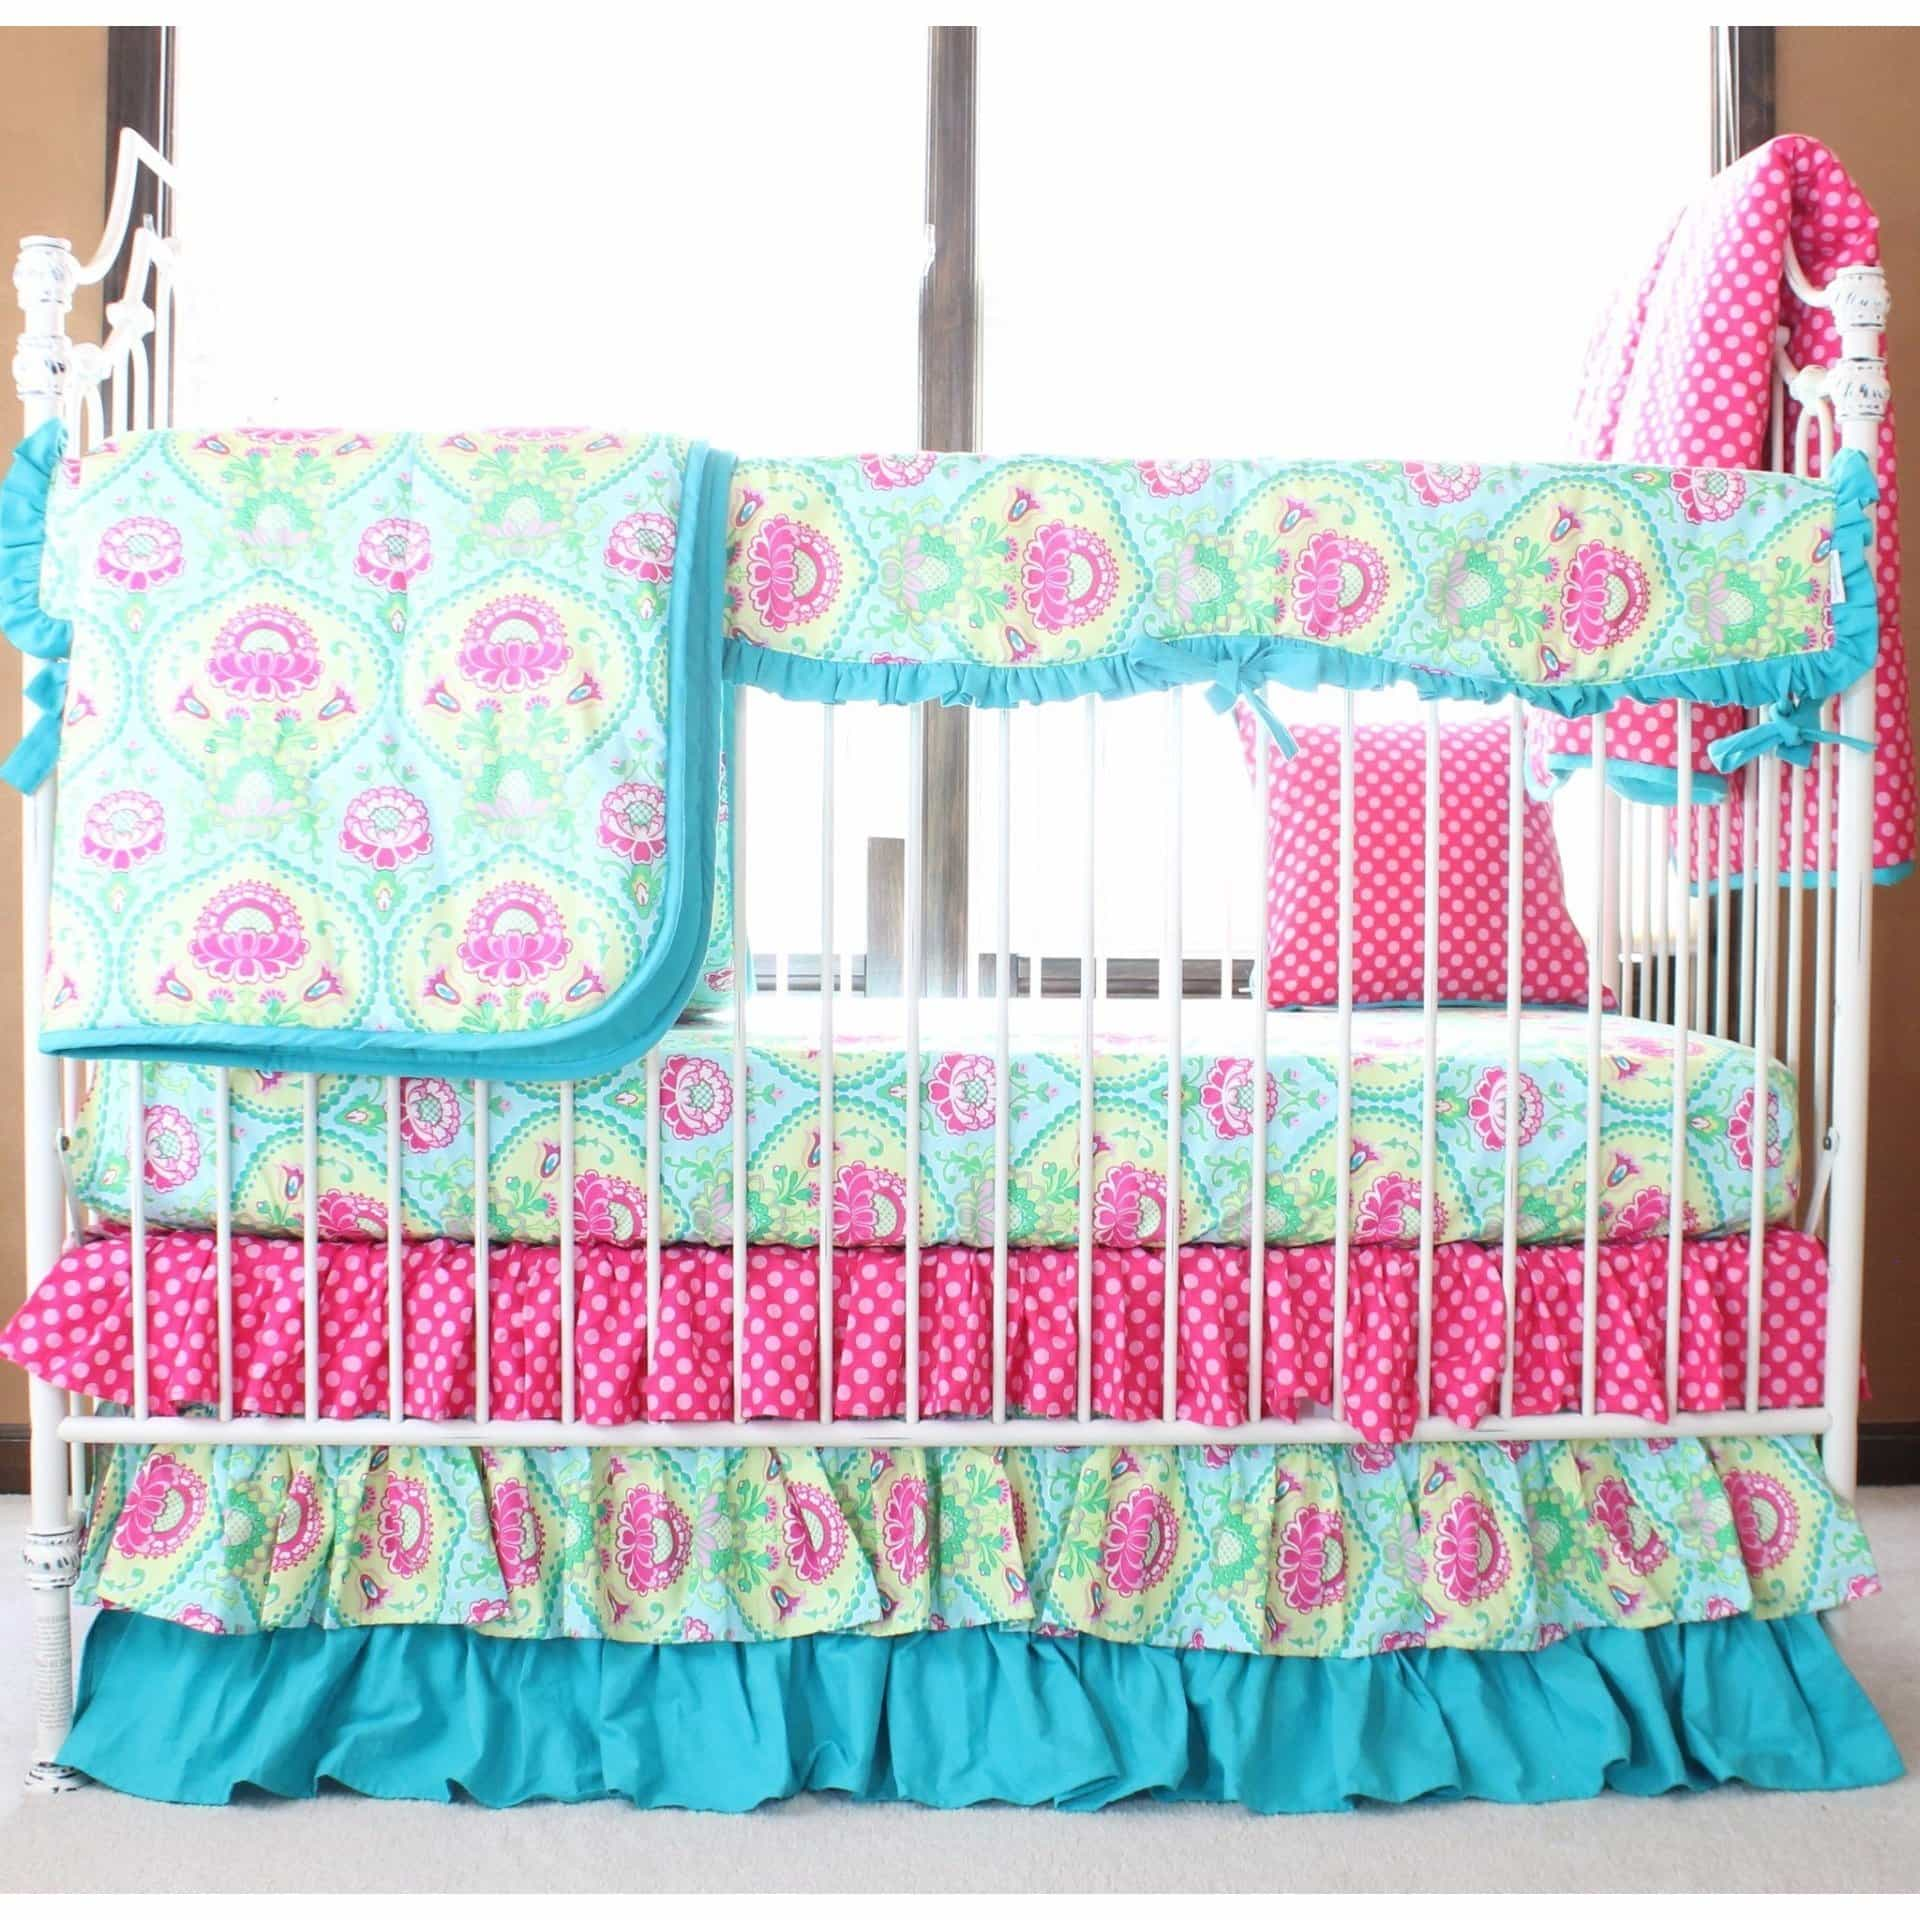 cordelias pastel girl teal products pink blue s cordelia baby crib skirt cribs floral bedding lavender